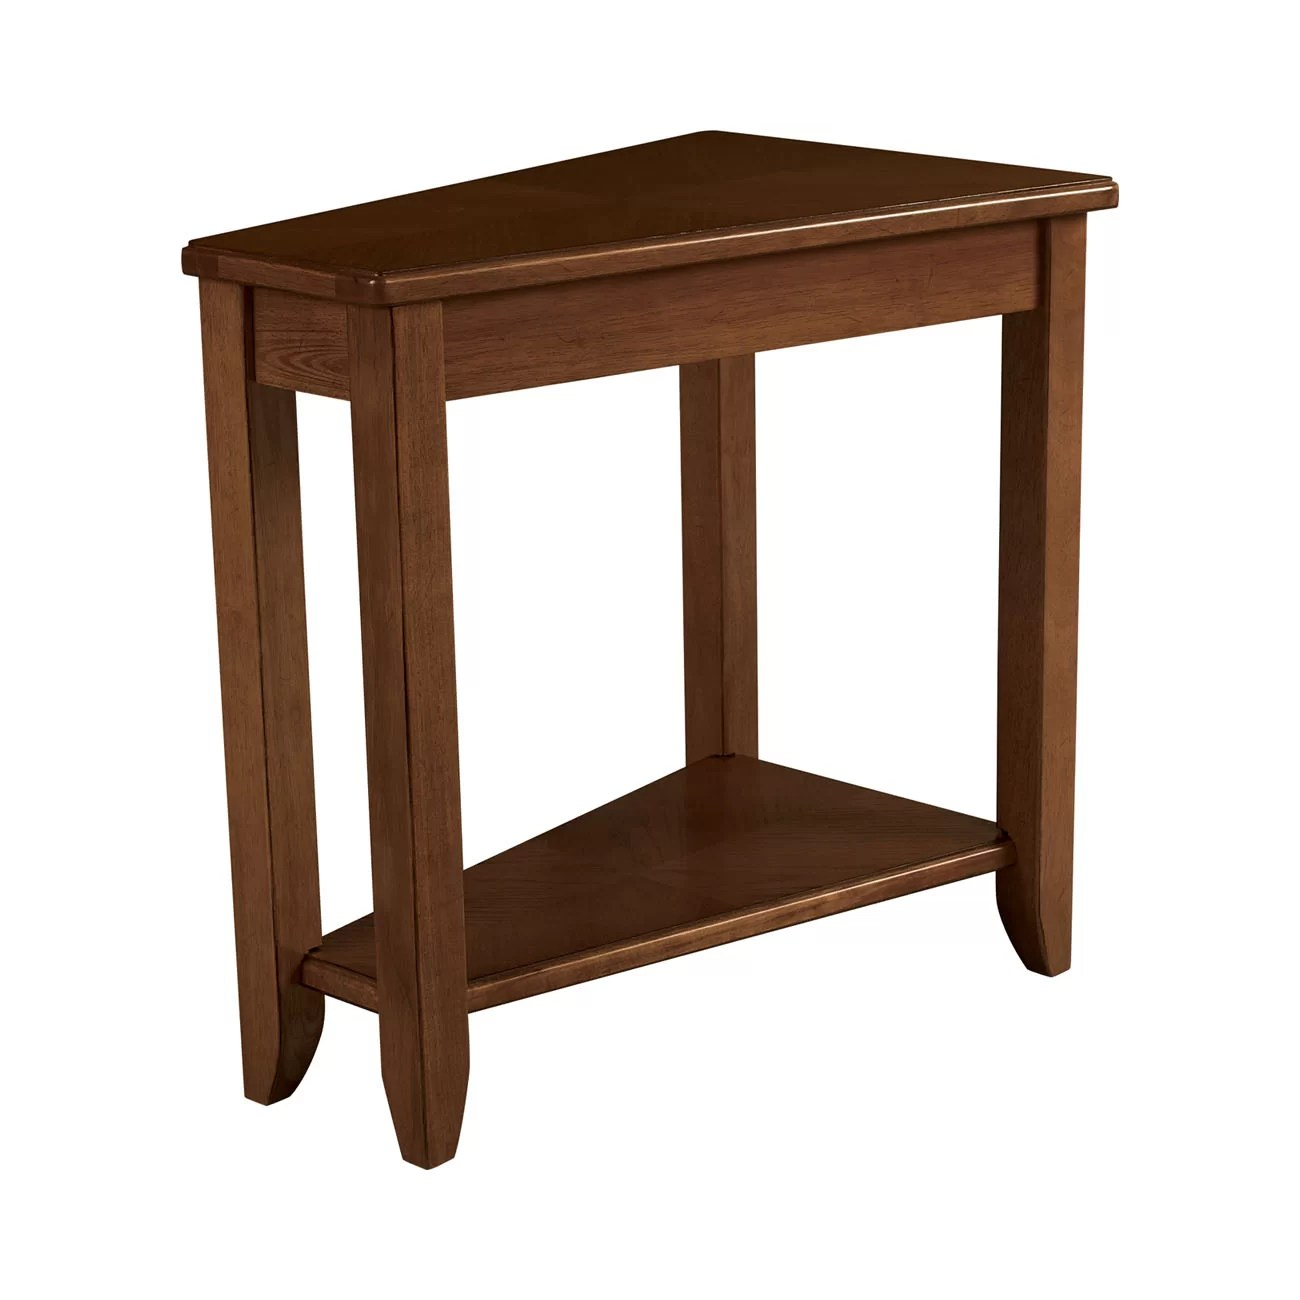 Chair Side Table Hammary Wedge Chairside Table And Reviews Wayfair